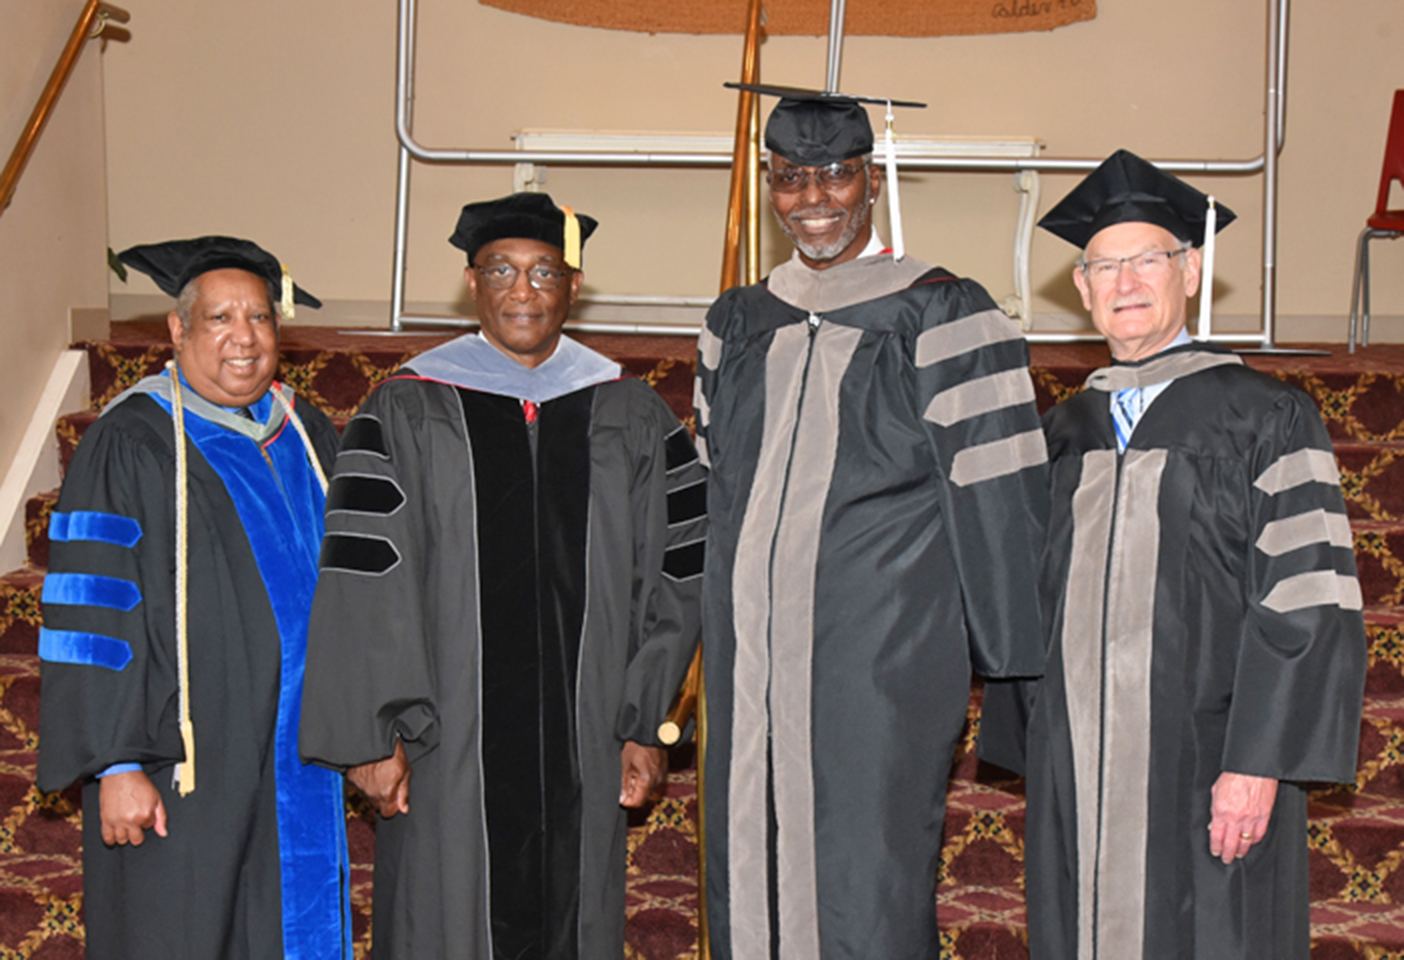 College of Veterinary Medicine Distinguished Alumni Awardees left to right, are Nelson, Powell, Davis and Cohn.